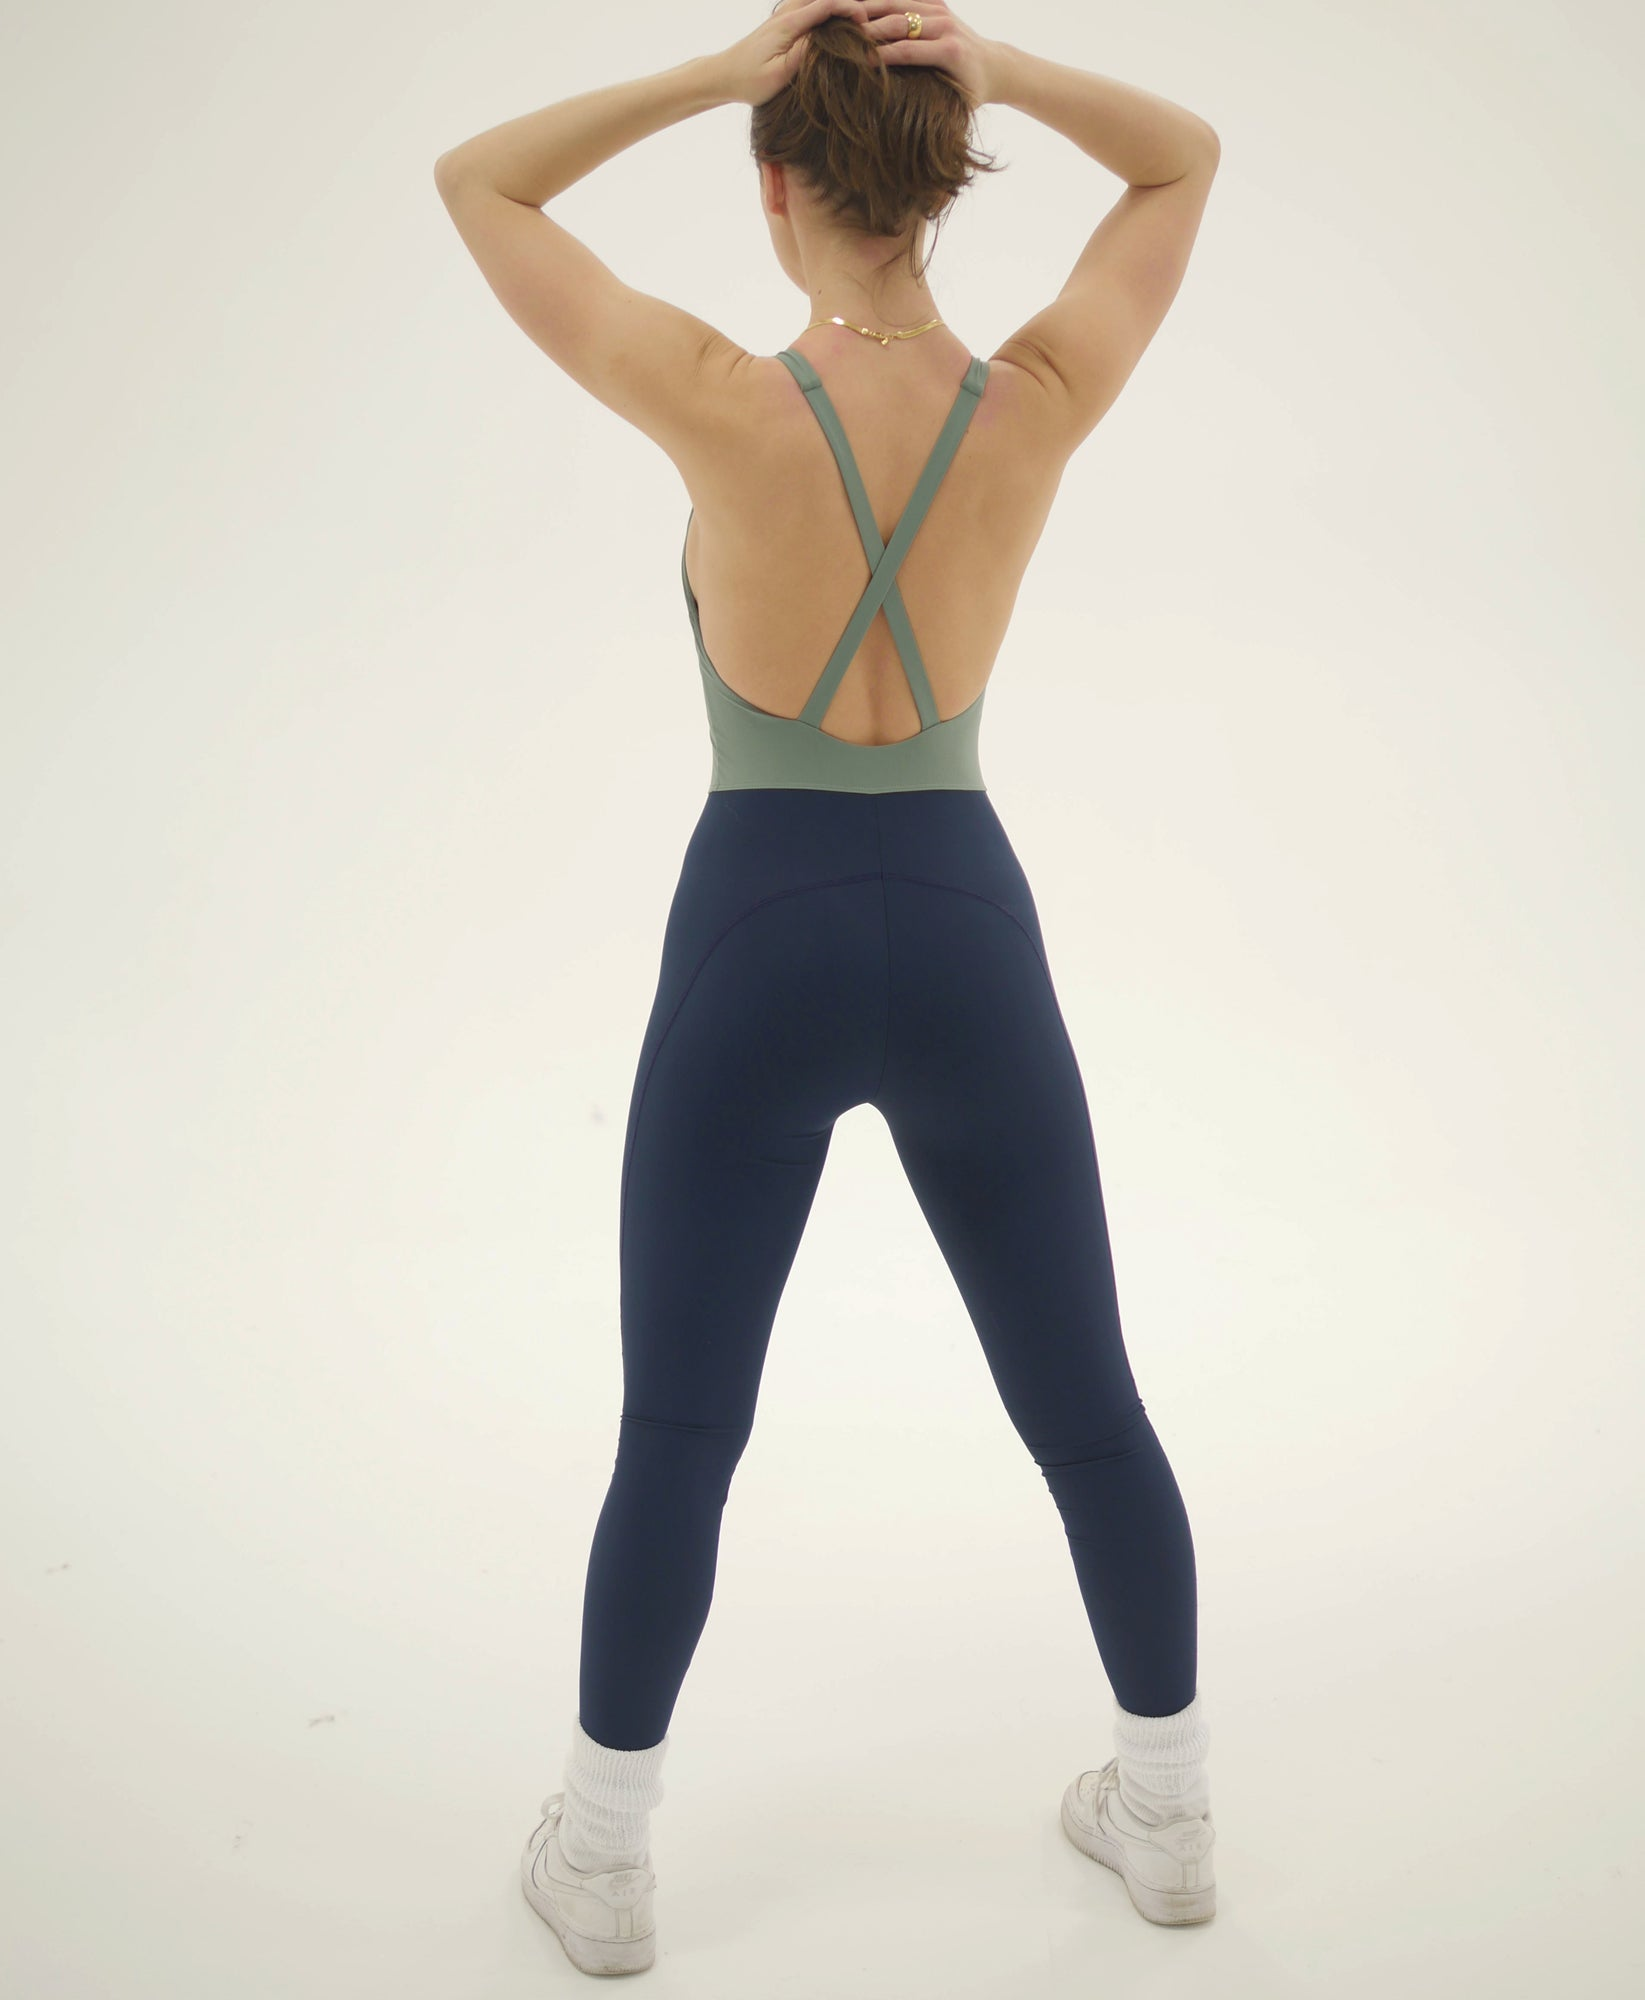 Wear One's At Liberty Unitard in Sage and Navy on Model Full Back View